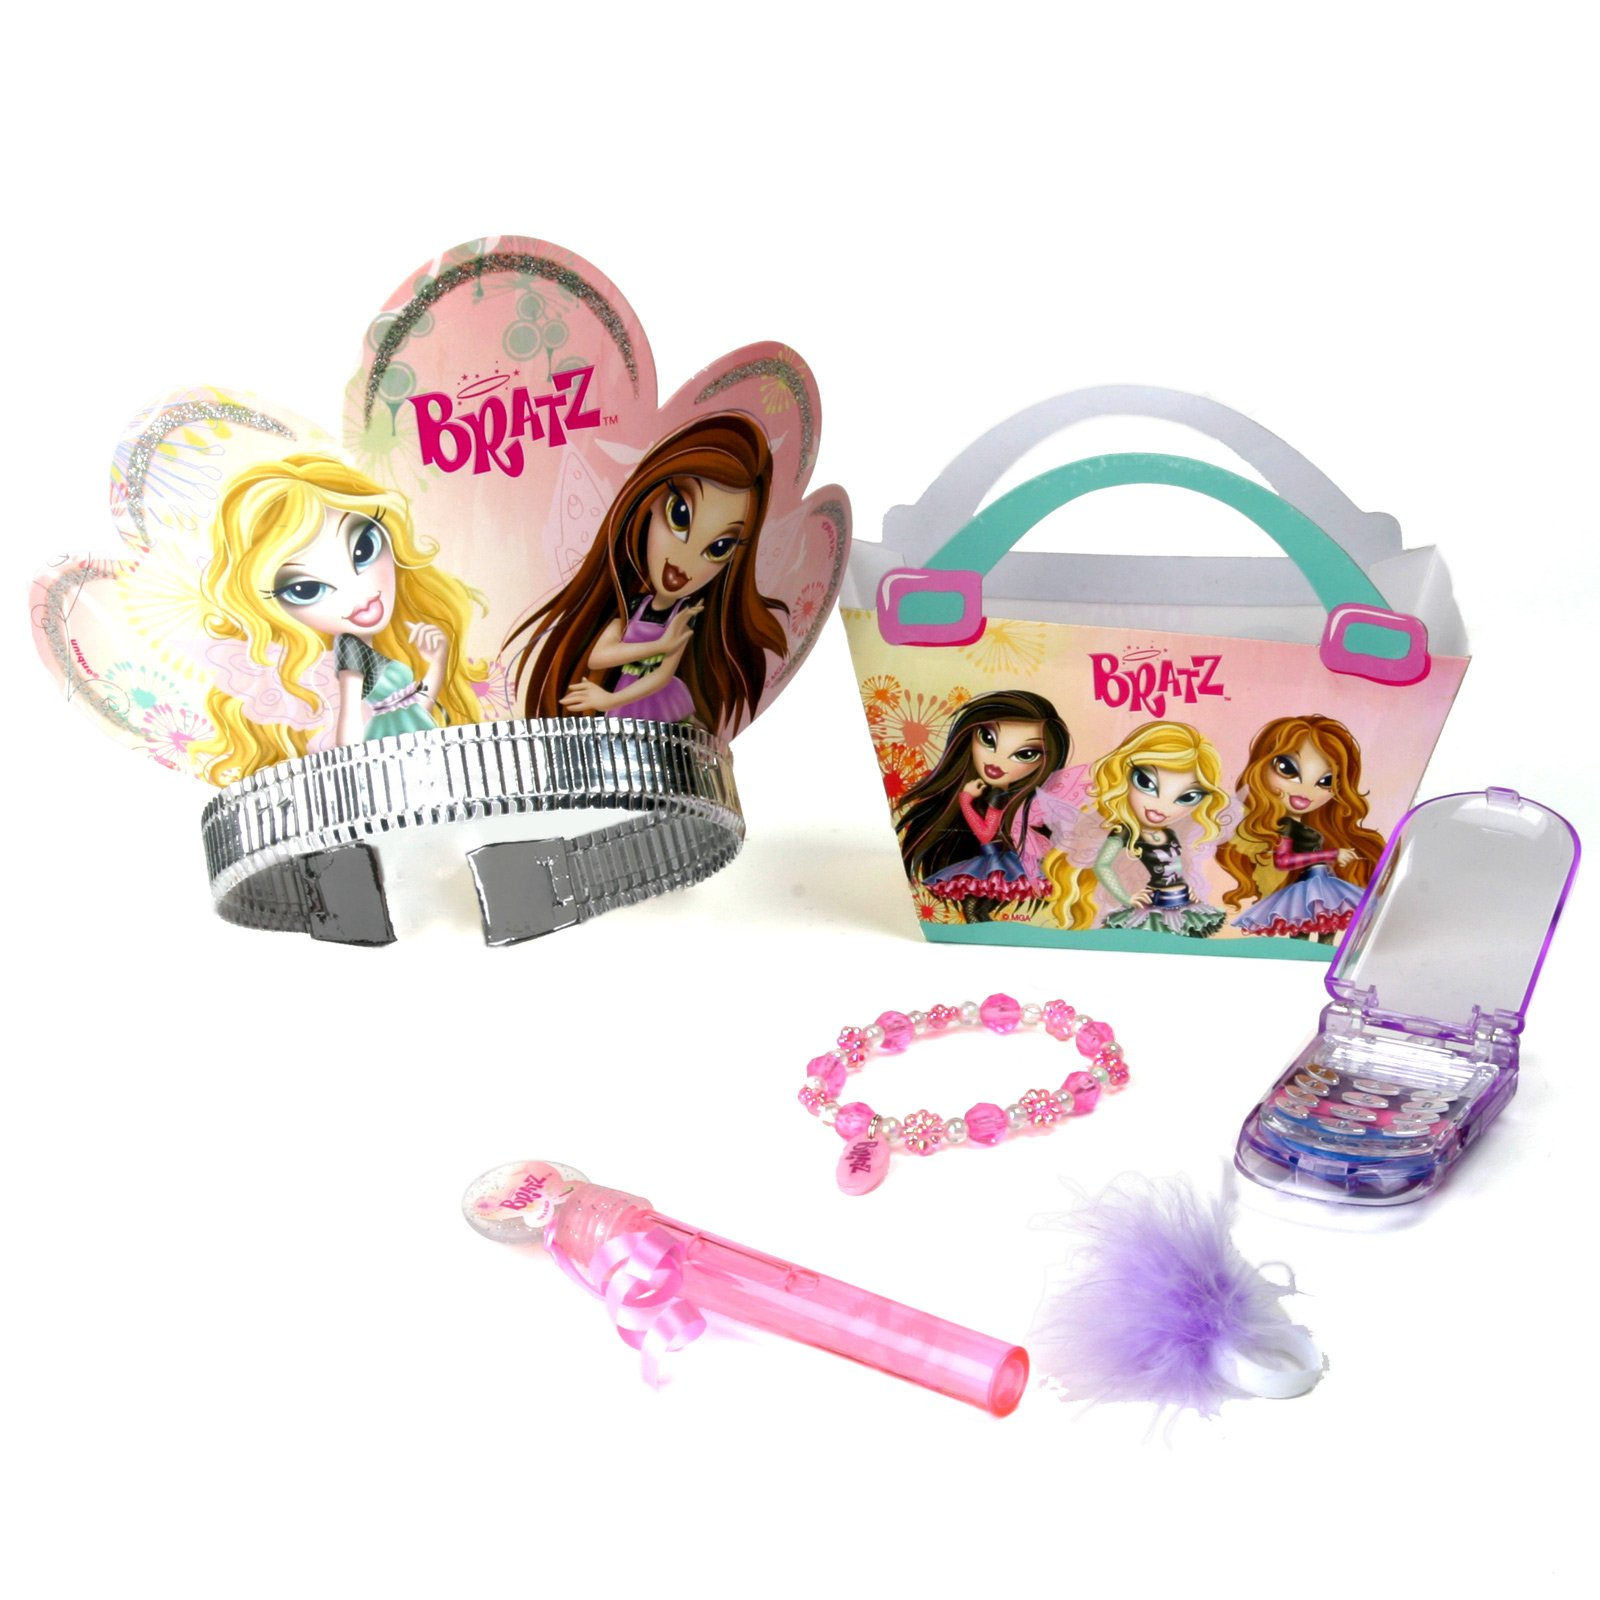 Bratz fashion pixiez breanna 66